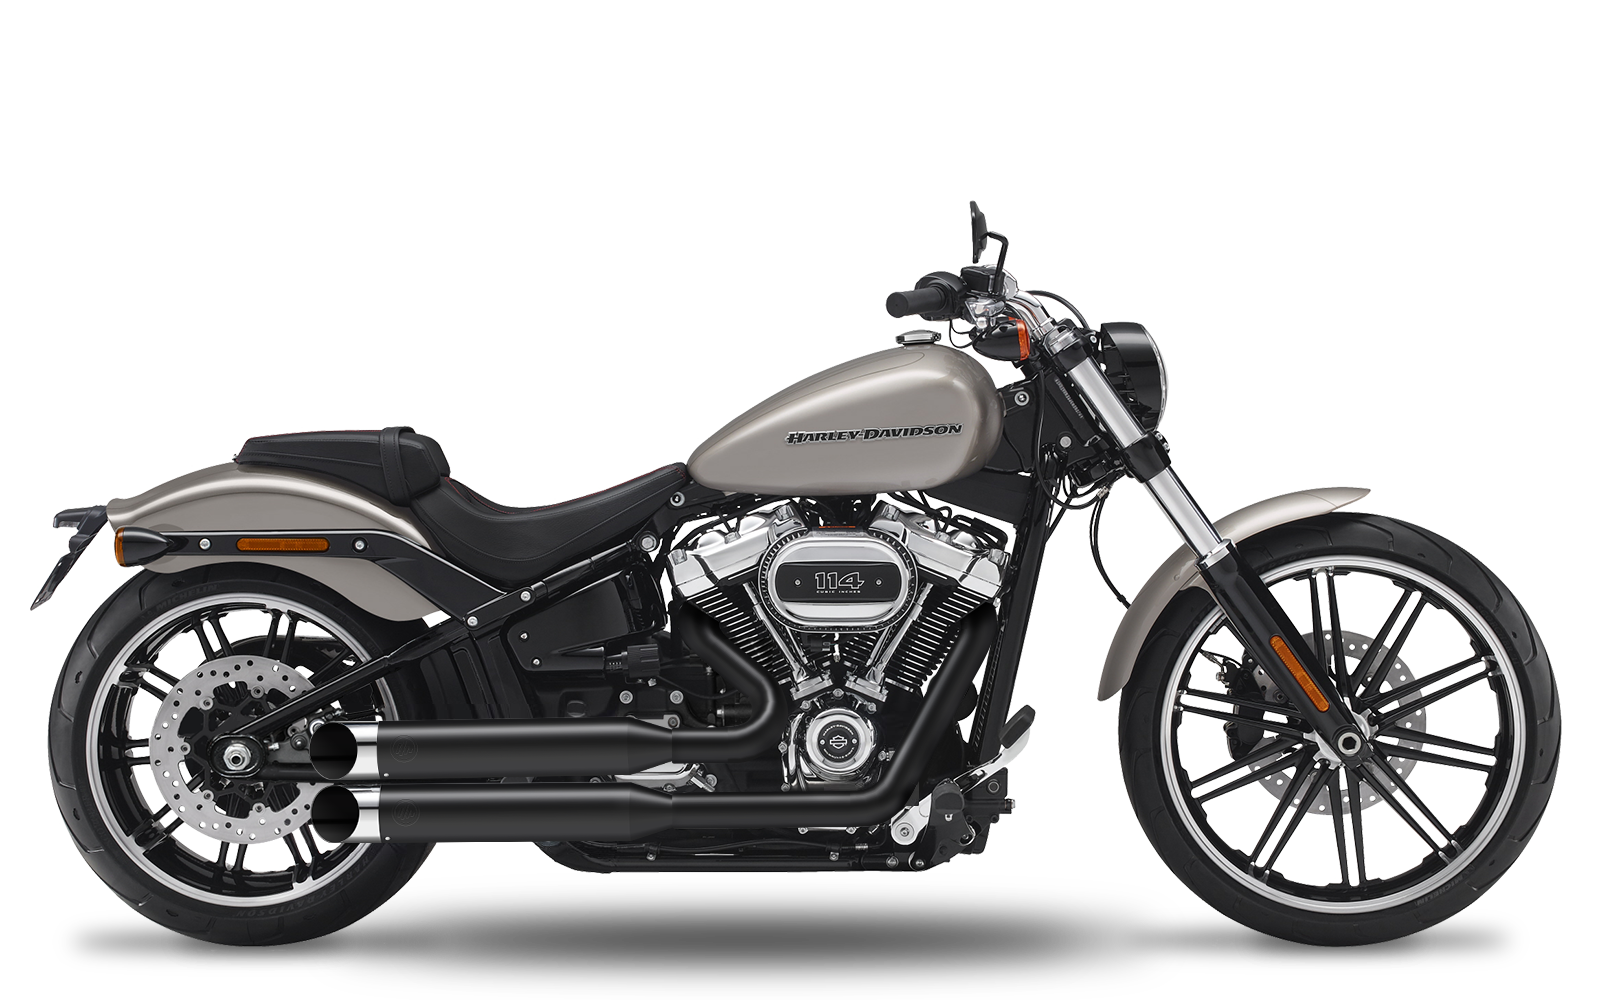 Softail - Breakout 114 / S - ME114 - 2021 - Complete systems